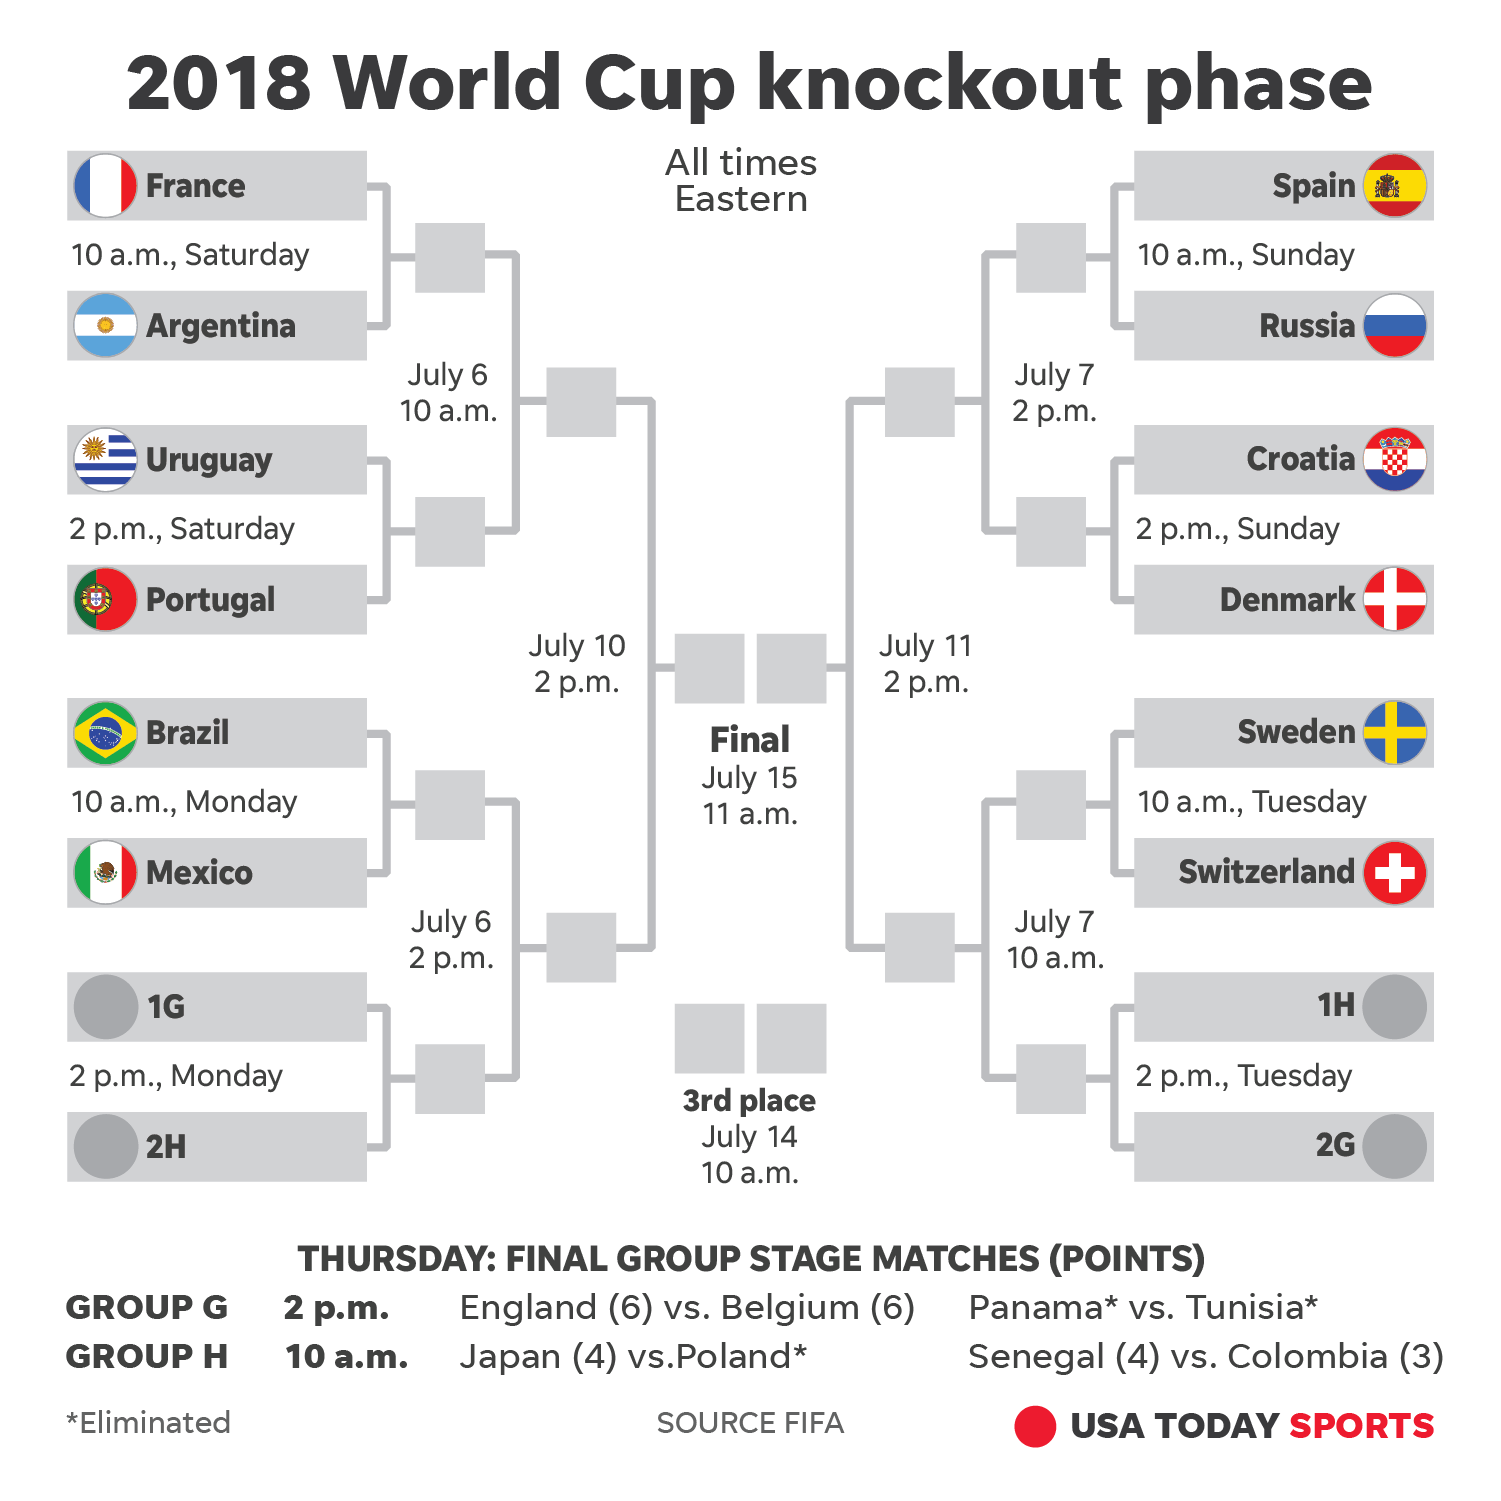 2018 World Cup: How to watch, schedule, stories for